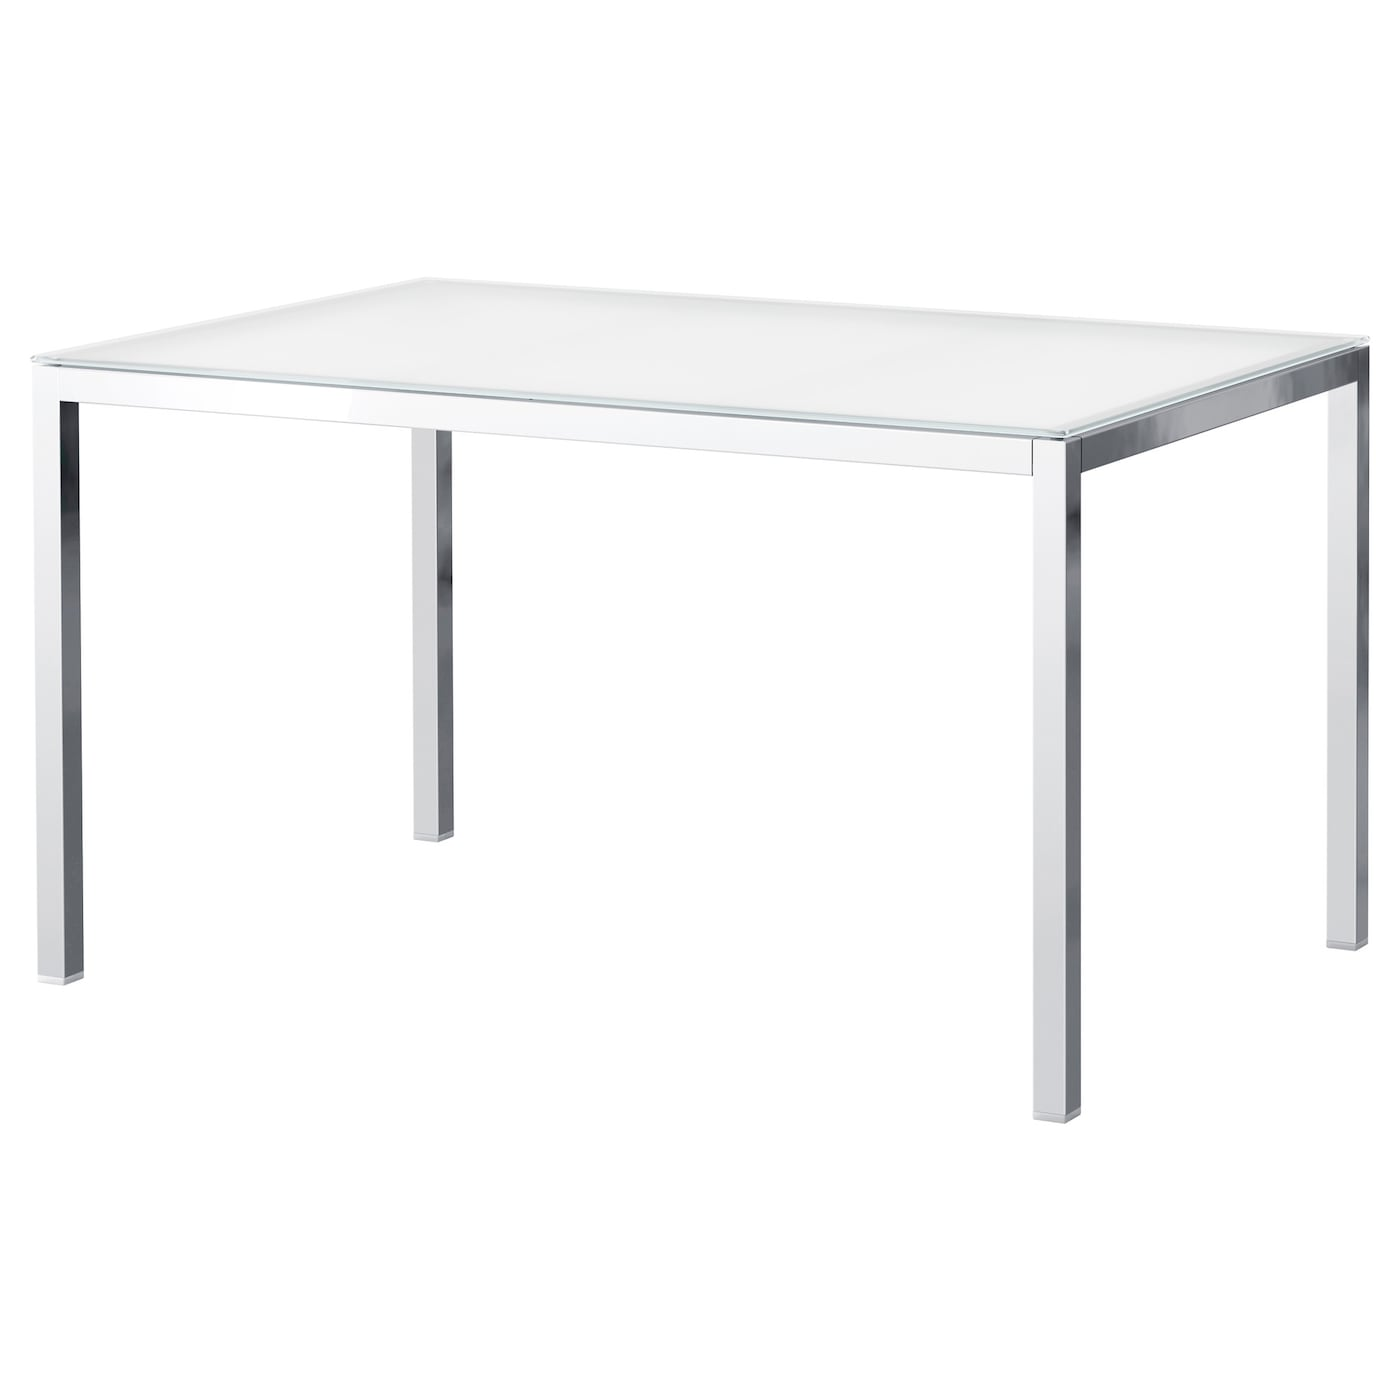 Un int rieur moderne pour lire ou se d tendre for Ikea table 9 99